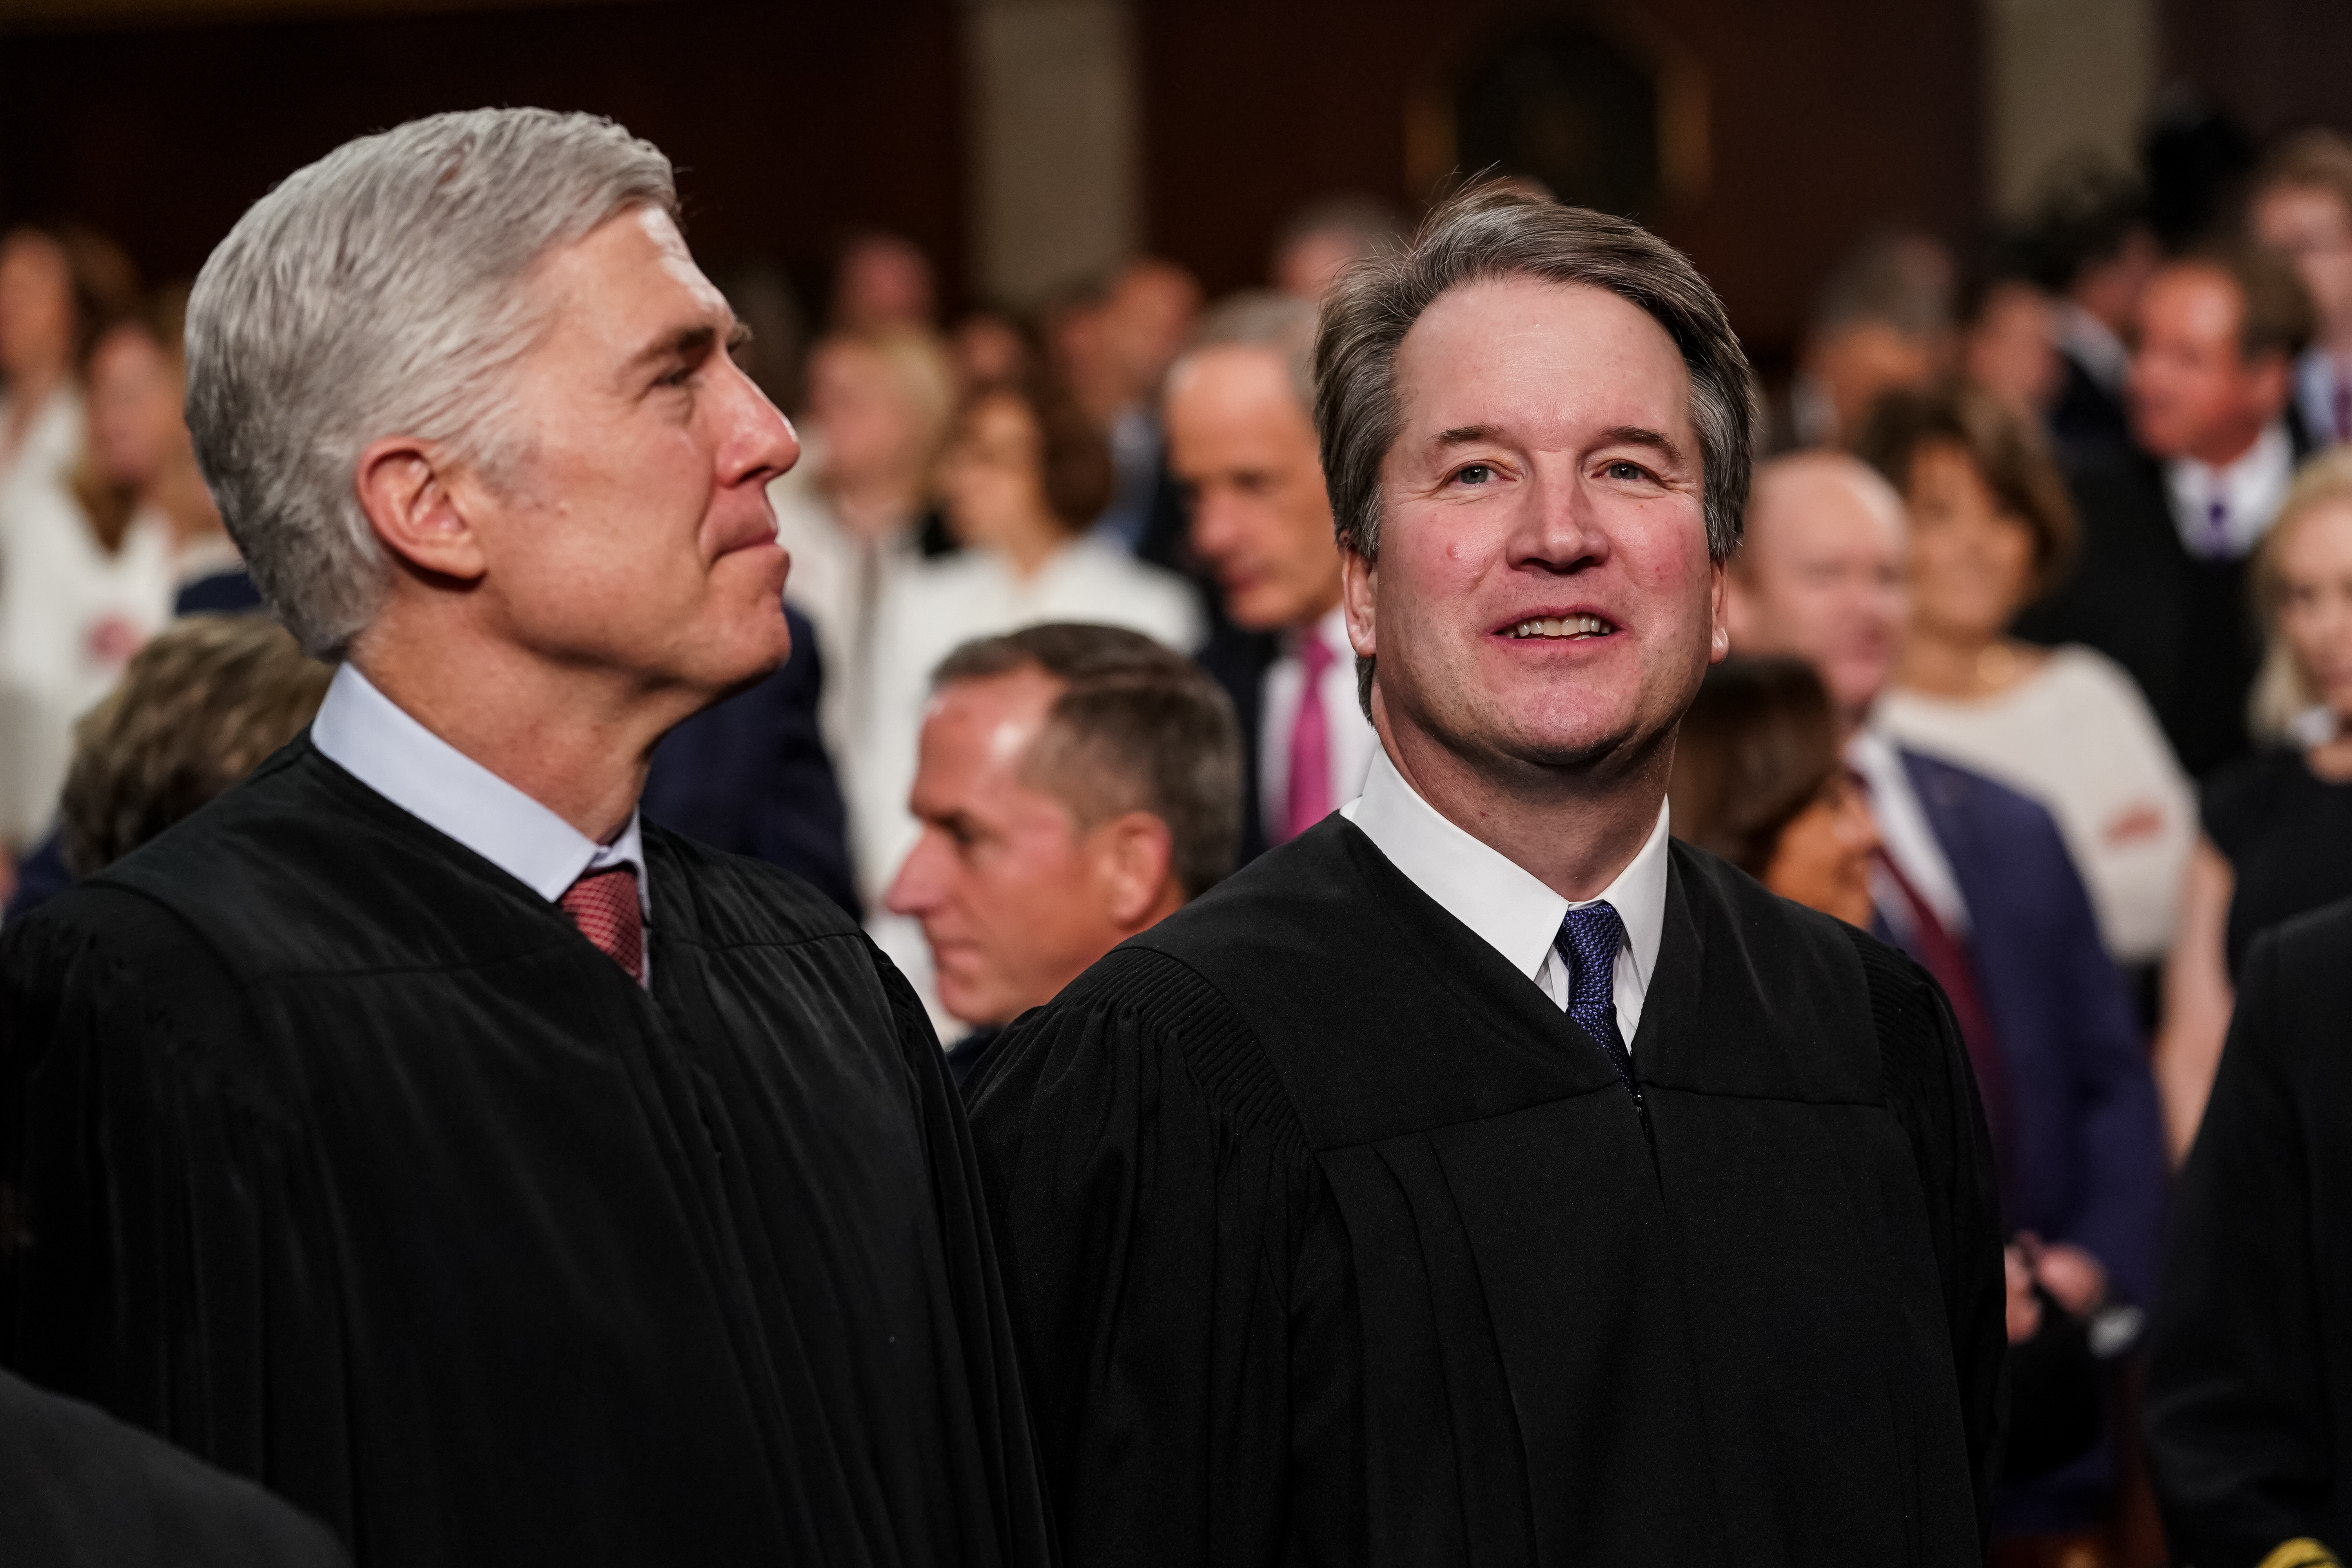 Supreme Court Justices Neil Gorsuch and Brett Kavanaugh attend the State of the Union address on February 5, 2019. (Doug Mills-Pool/Getty Images)